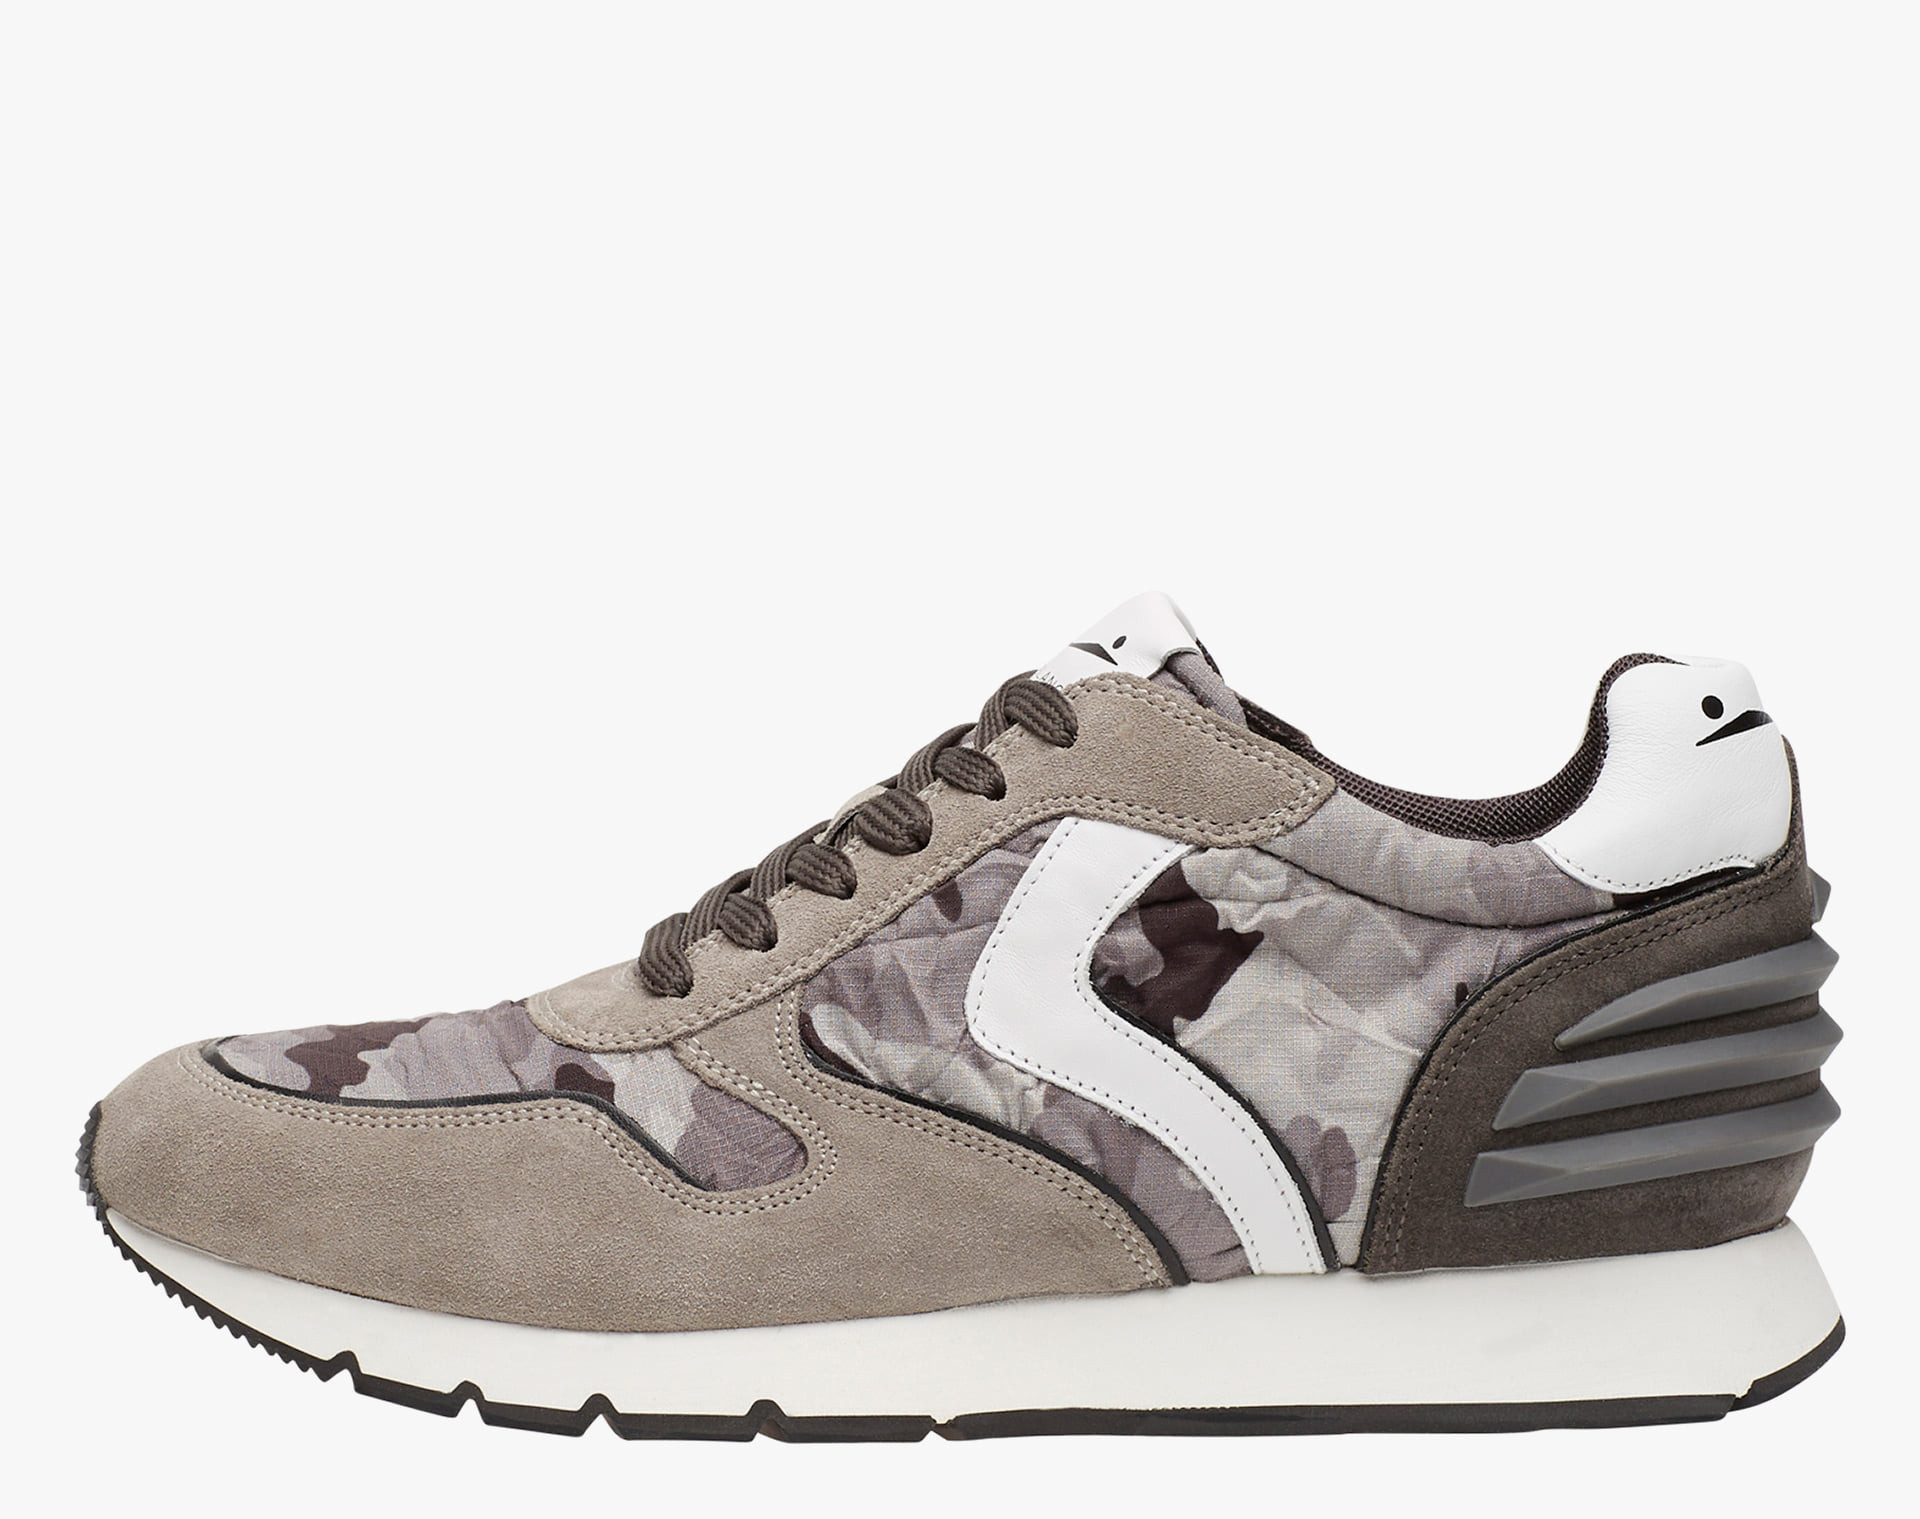 LIAM POWER - Leather sneakers - Grey-White-Charcoal Grey